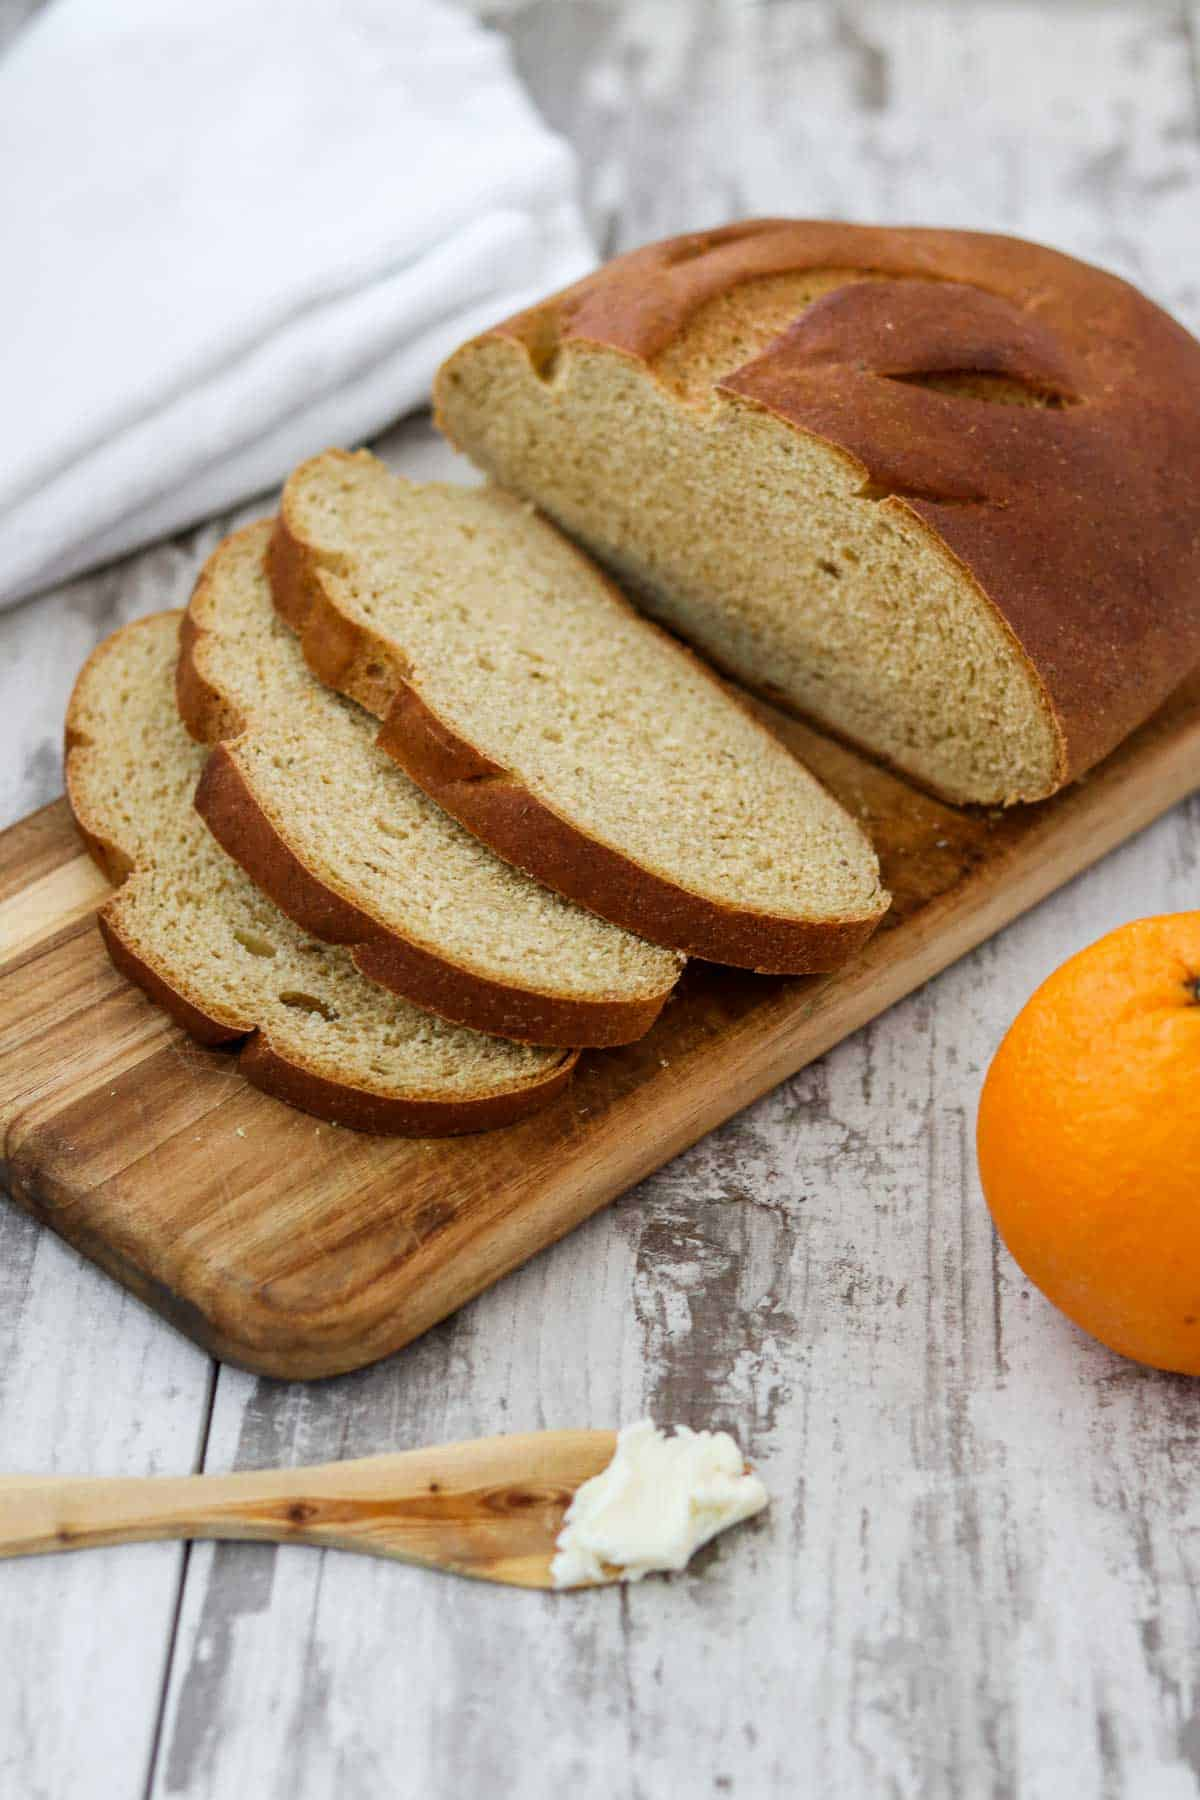 Swedish limpa bread on a cutting board next to butter and an orange.